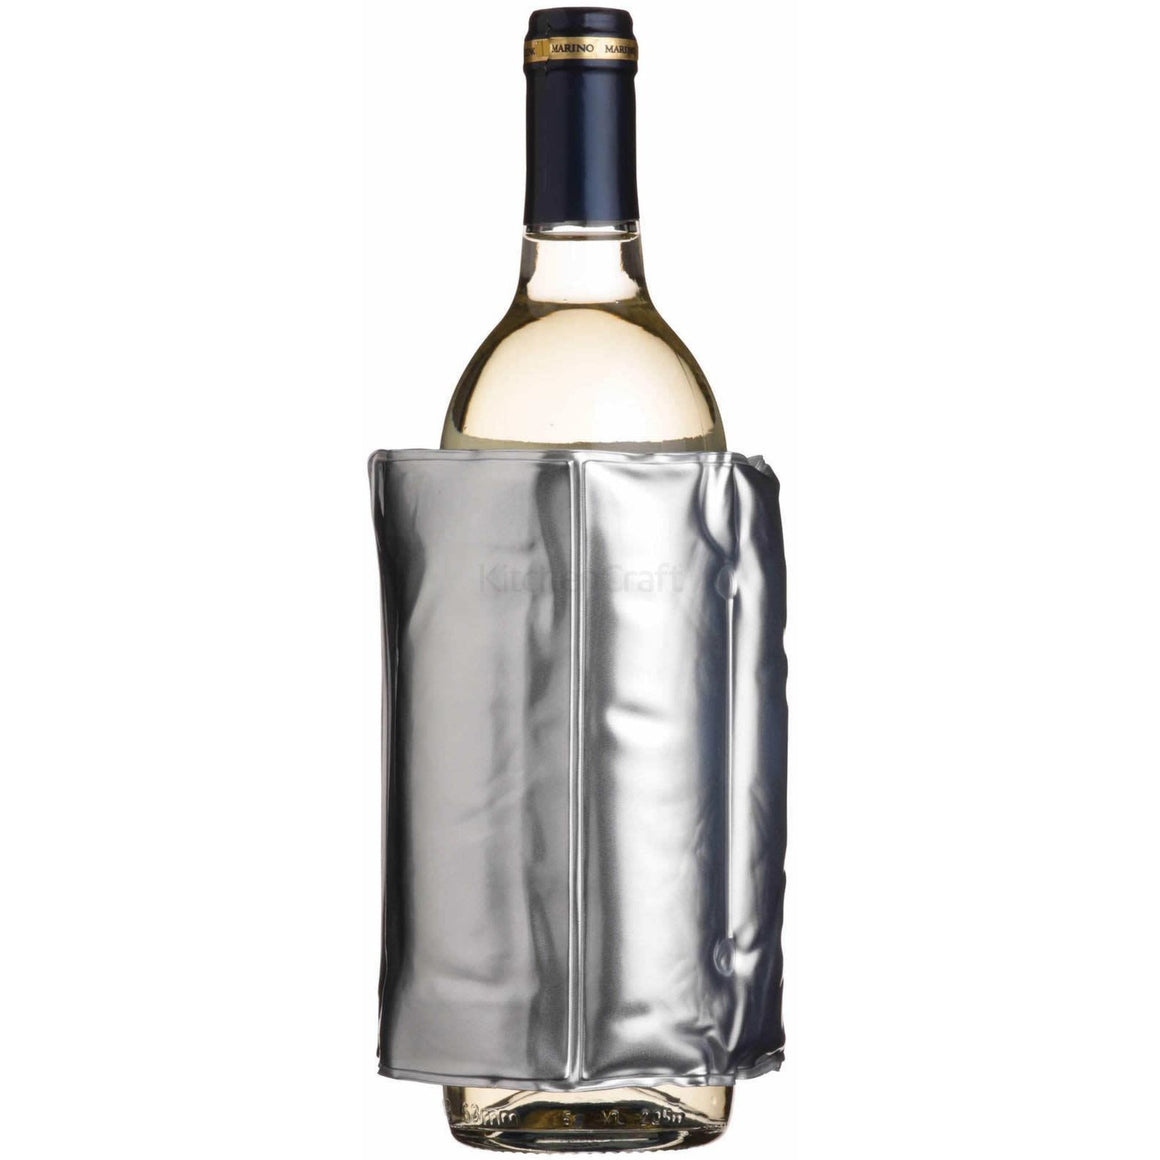 KitchenCraft Wrap Wine Cooler